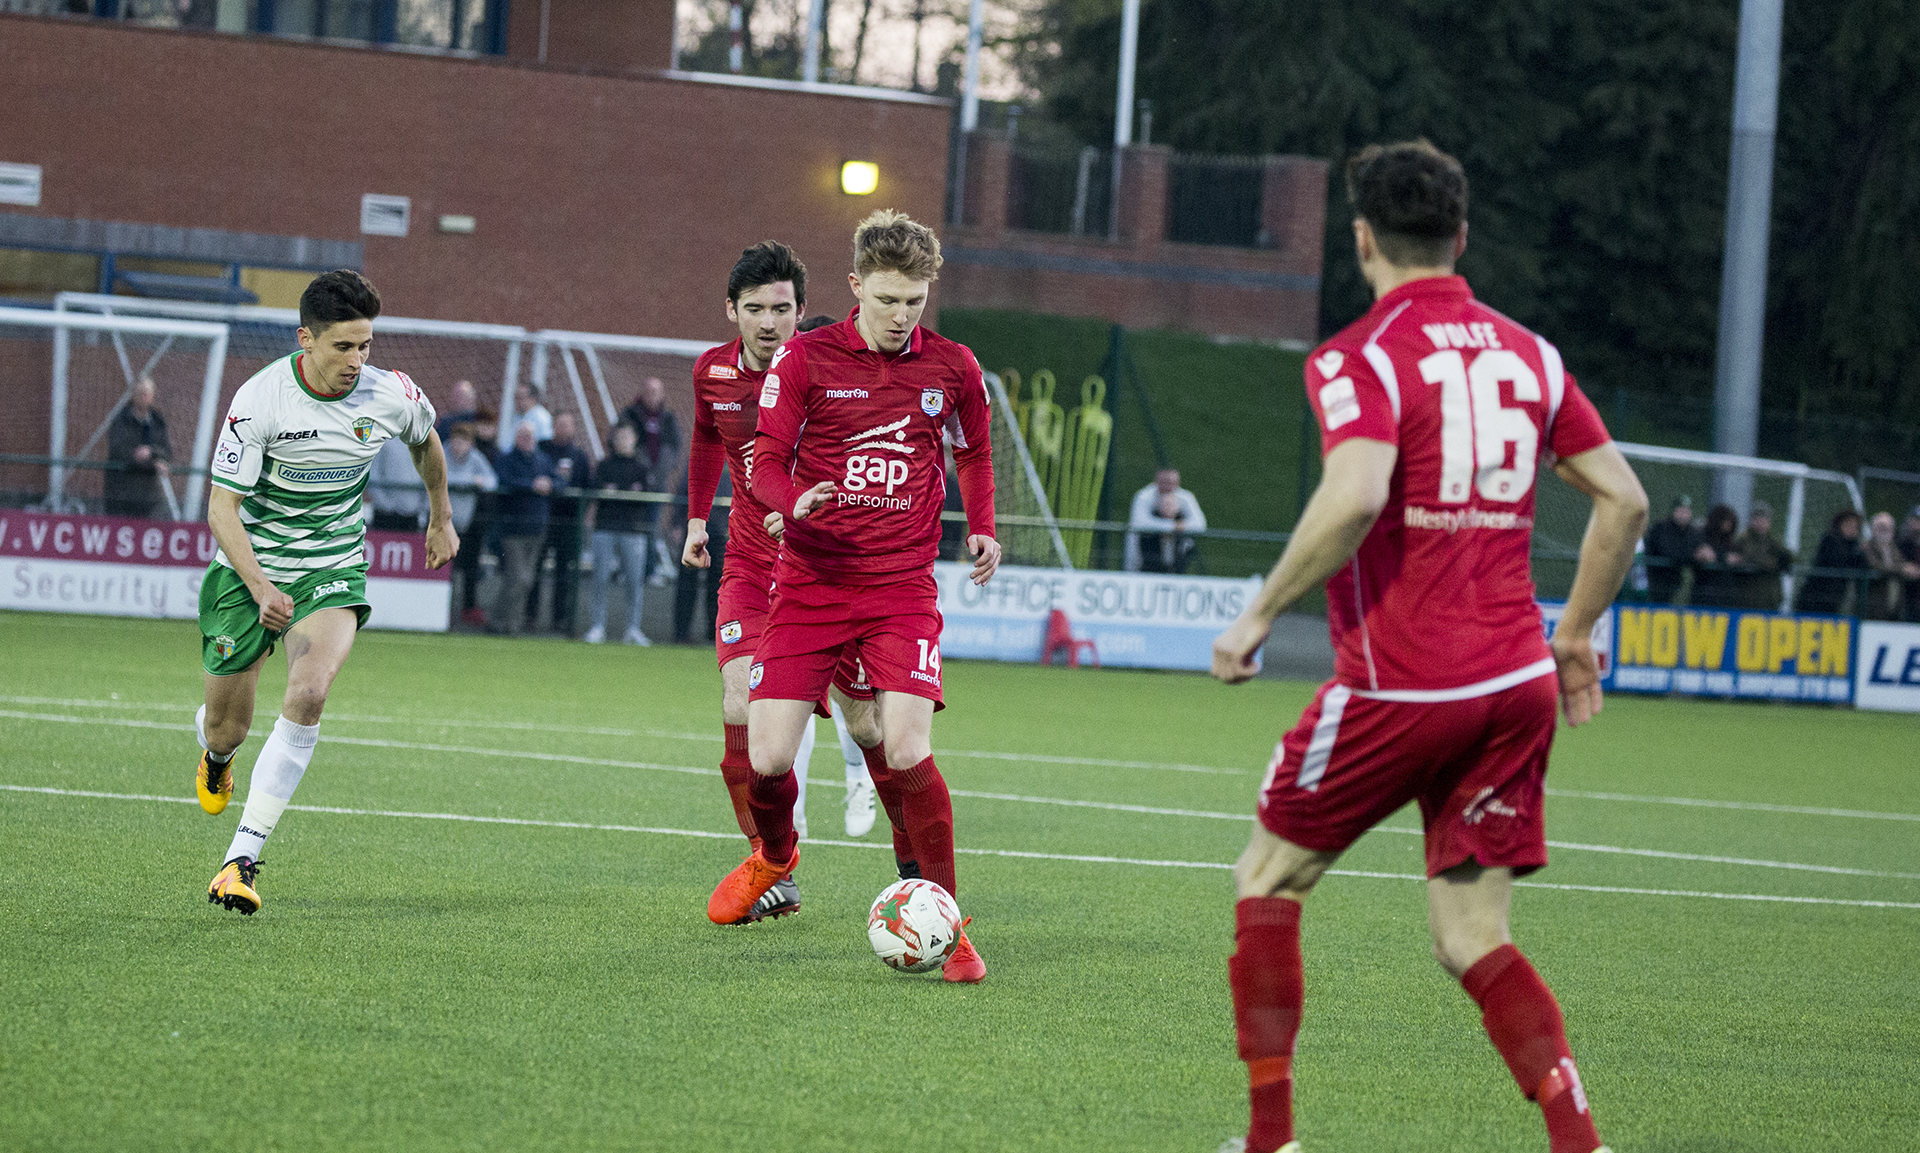 Declan Poole made his full debut for The Nomads